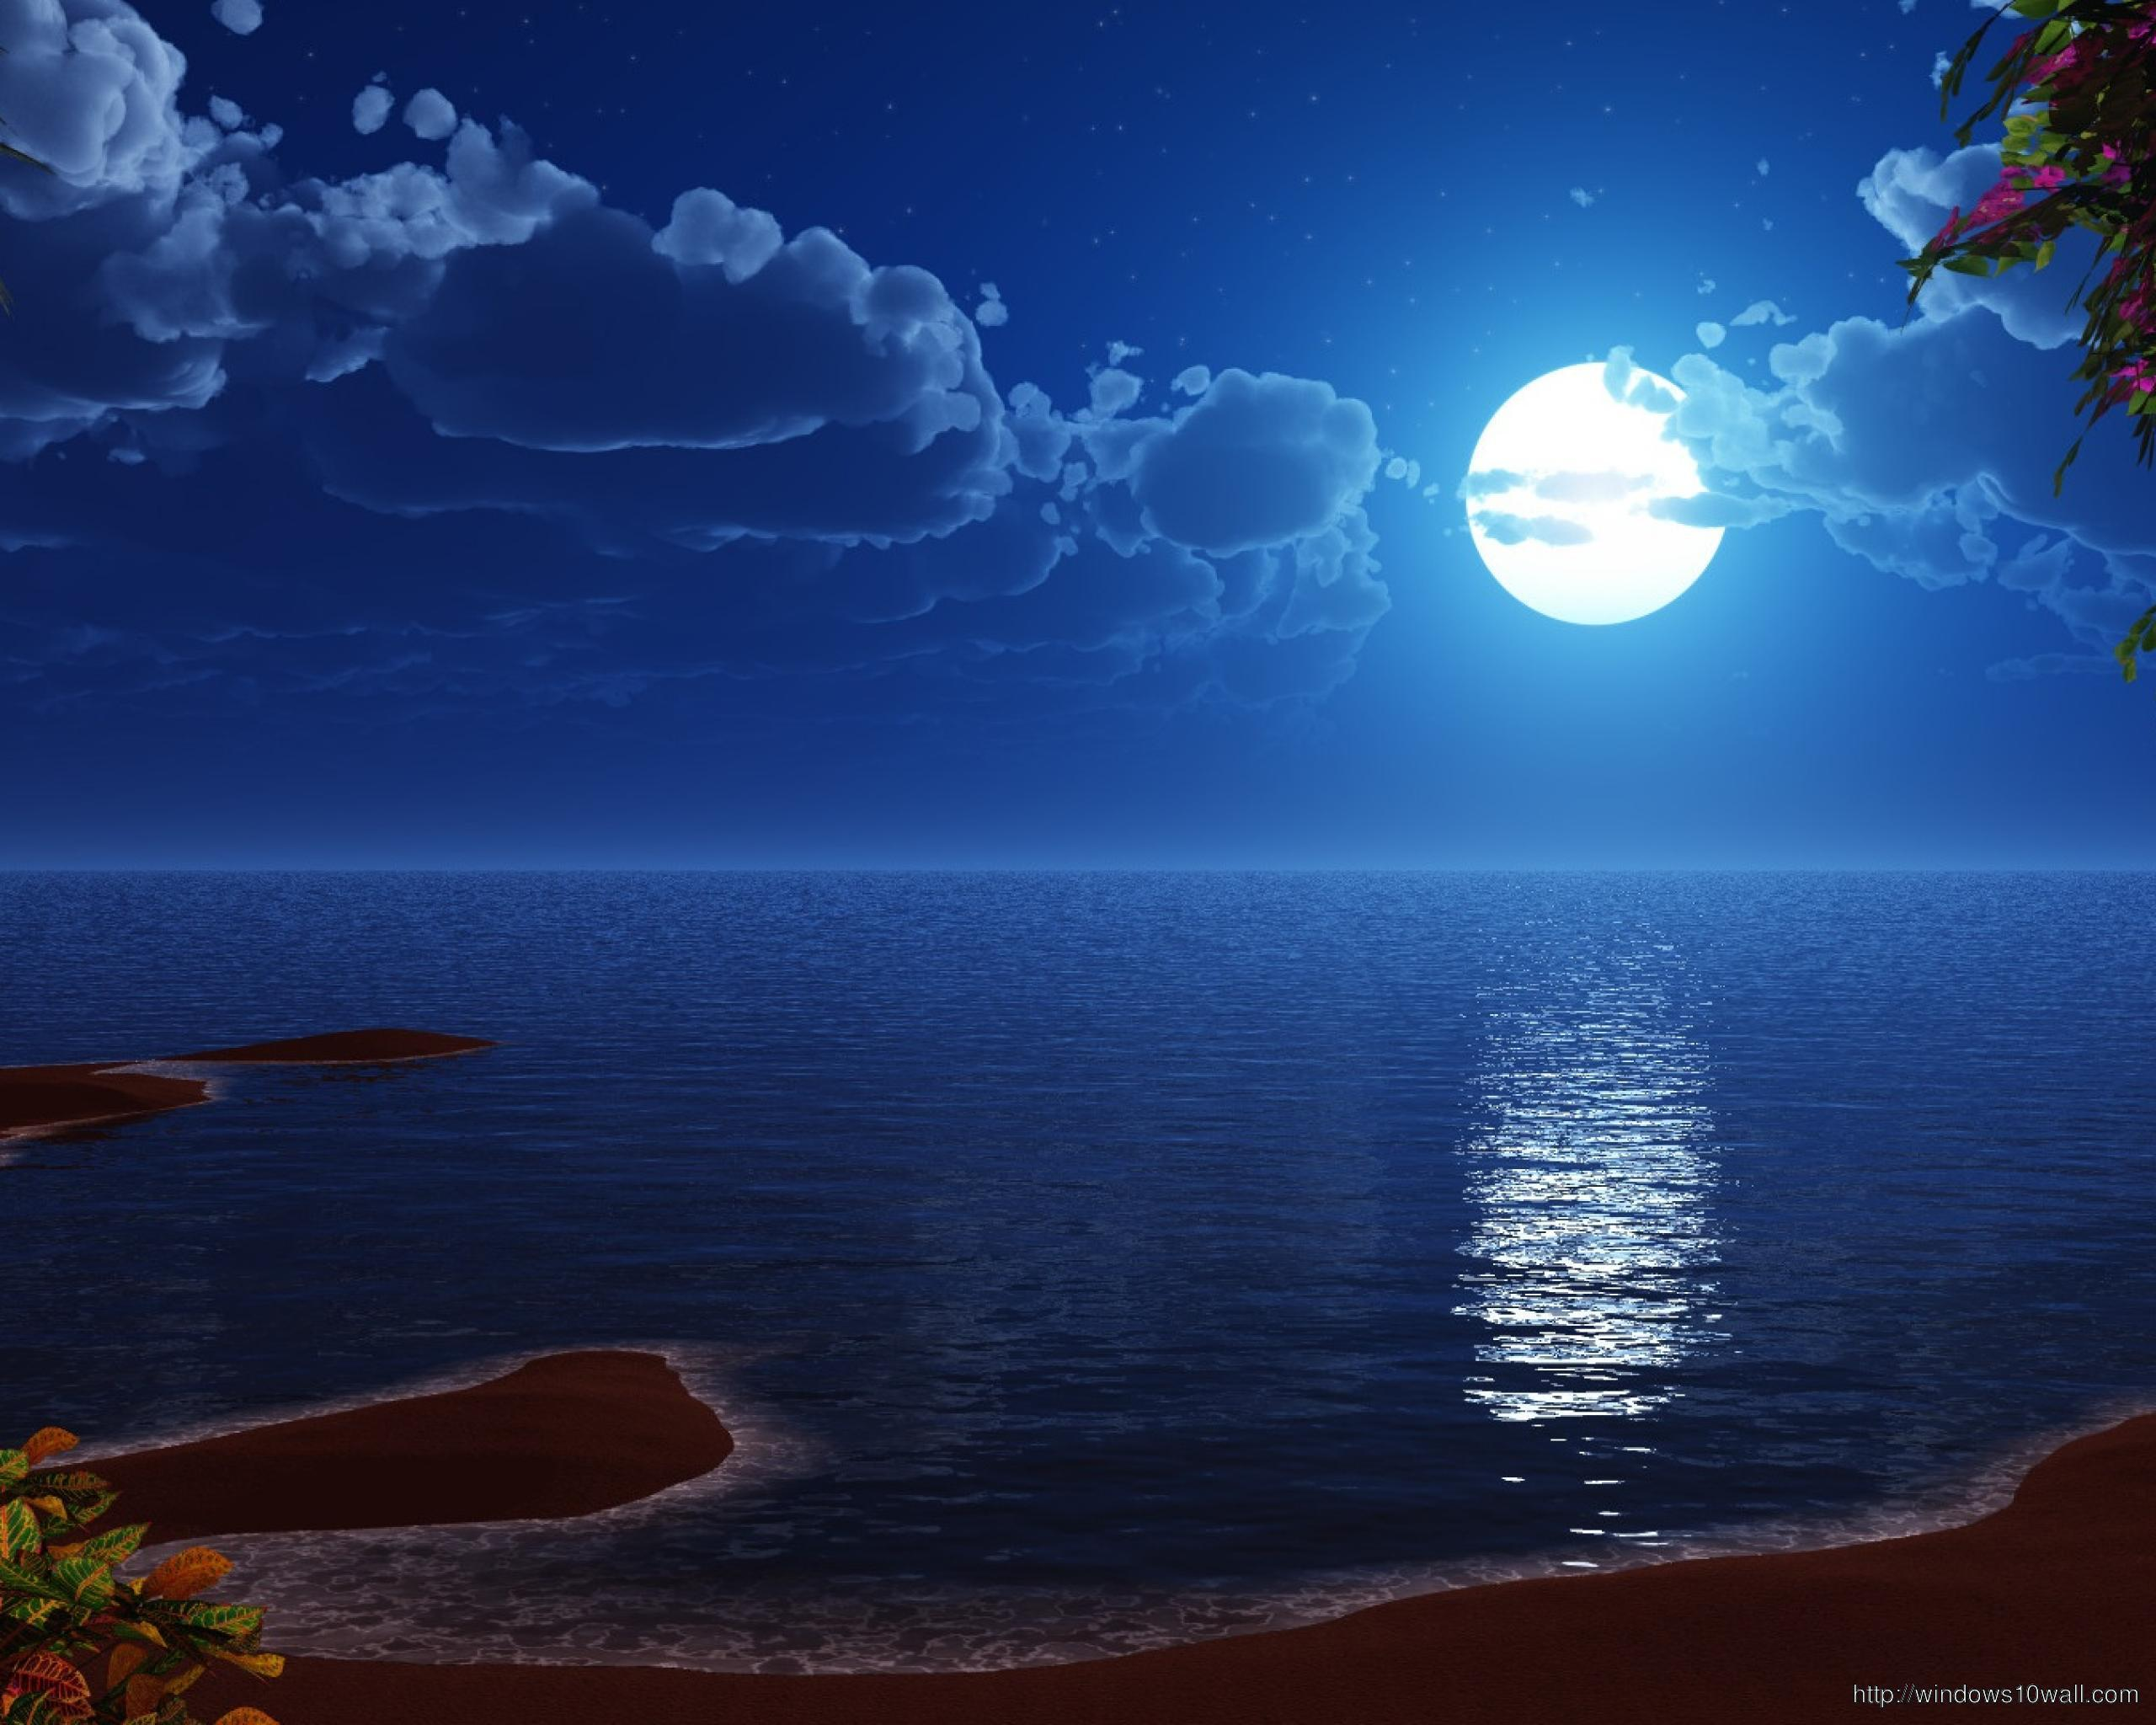 Blue Moon On Beach Hd Wallpaper Windows 10 Wallpapers